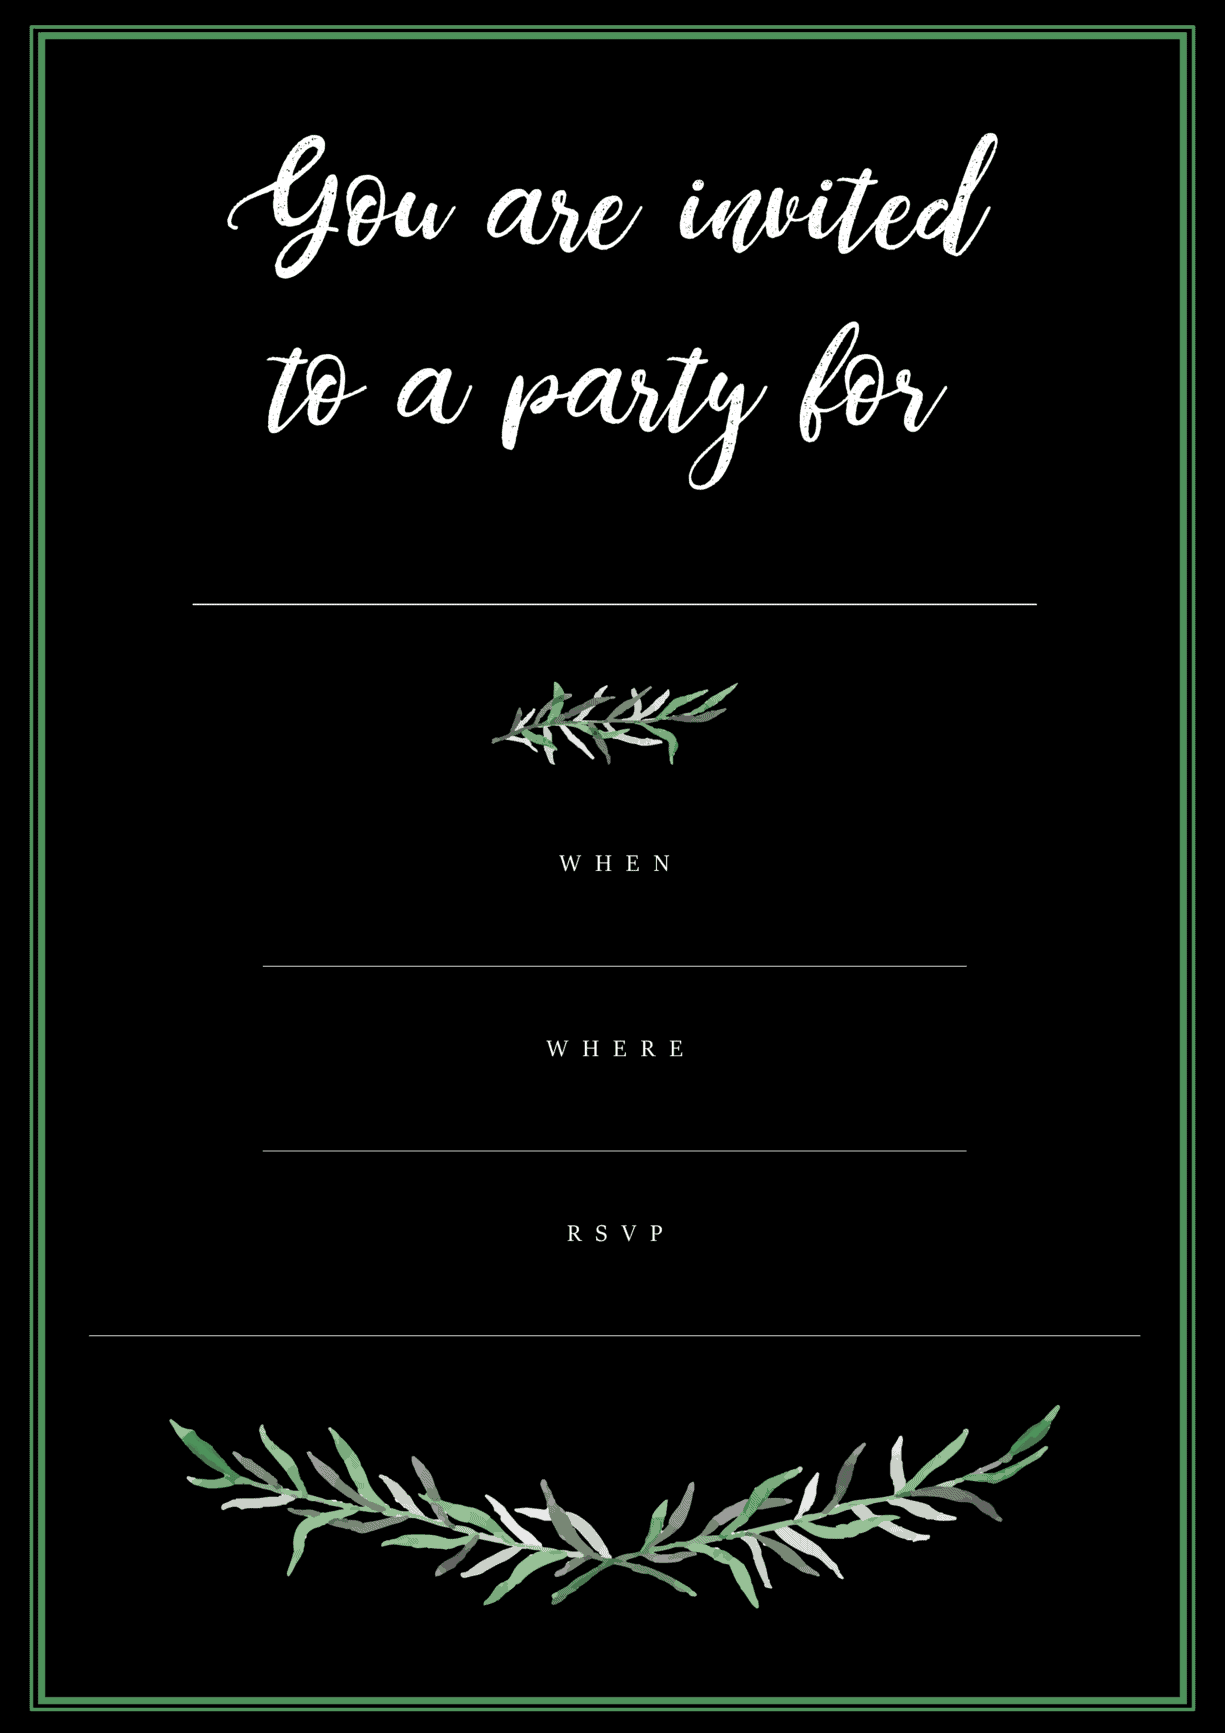 Free Party Invitations - All free Invitations